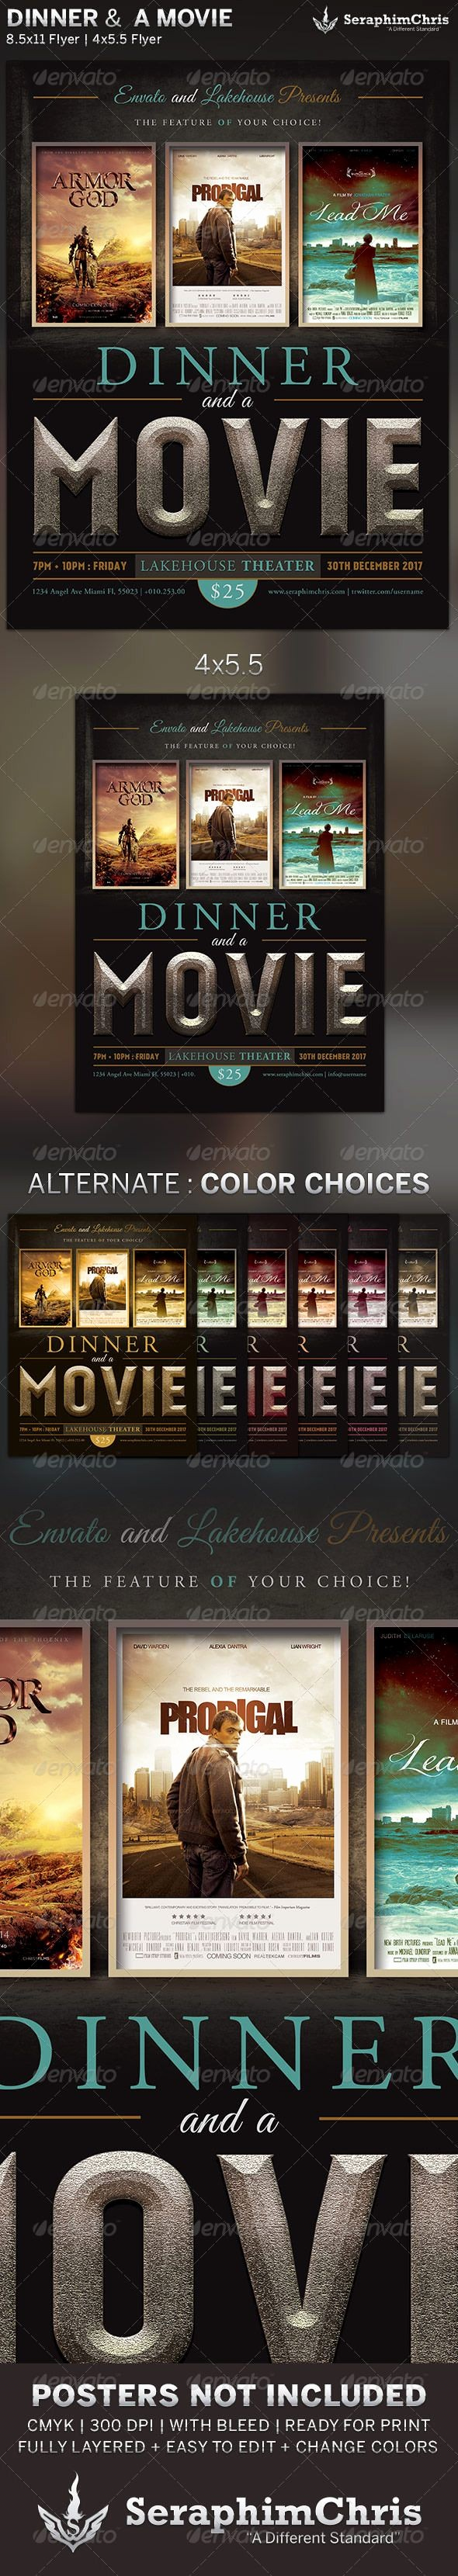 Dinner and A Movie Flyer Inspirational 54 Best Images About Dinner and A Movie Night On Pinterest